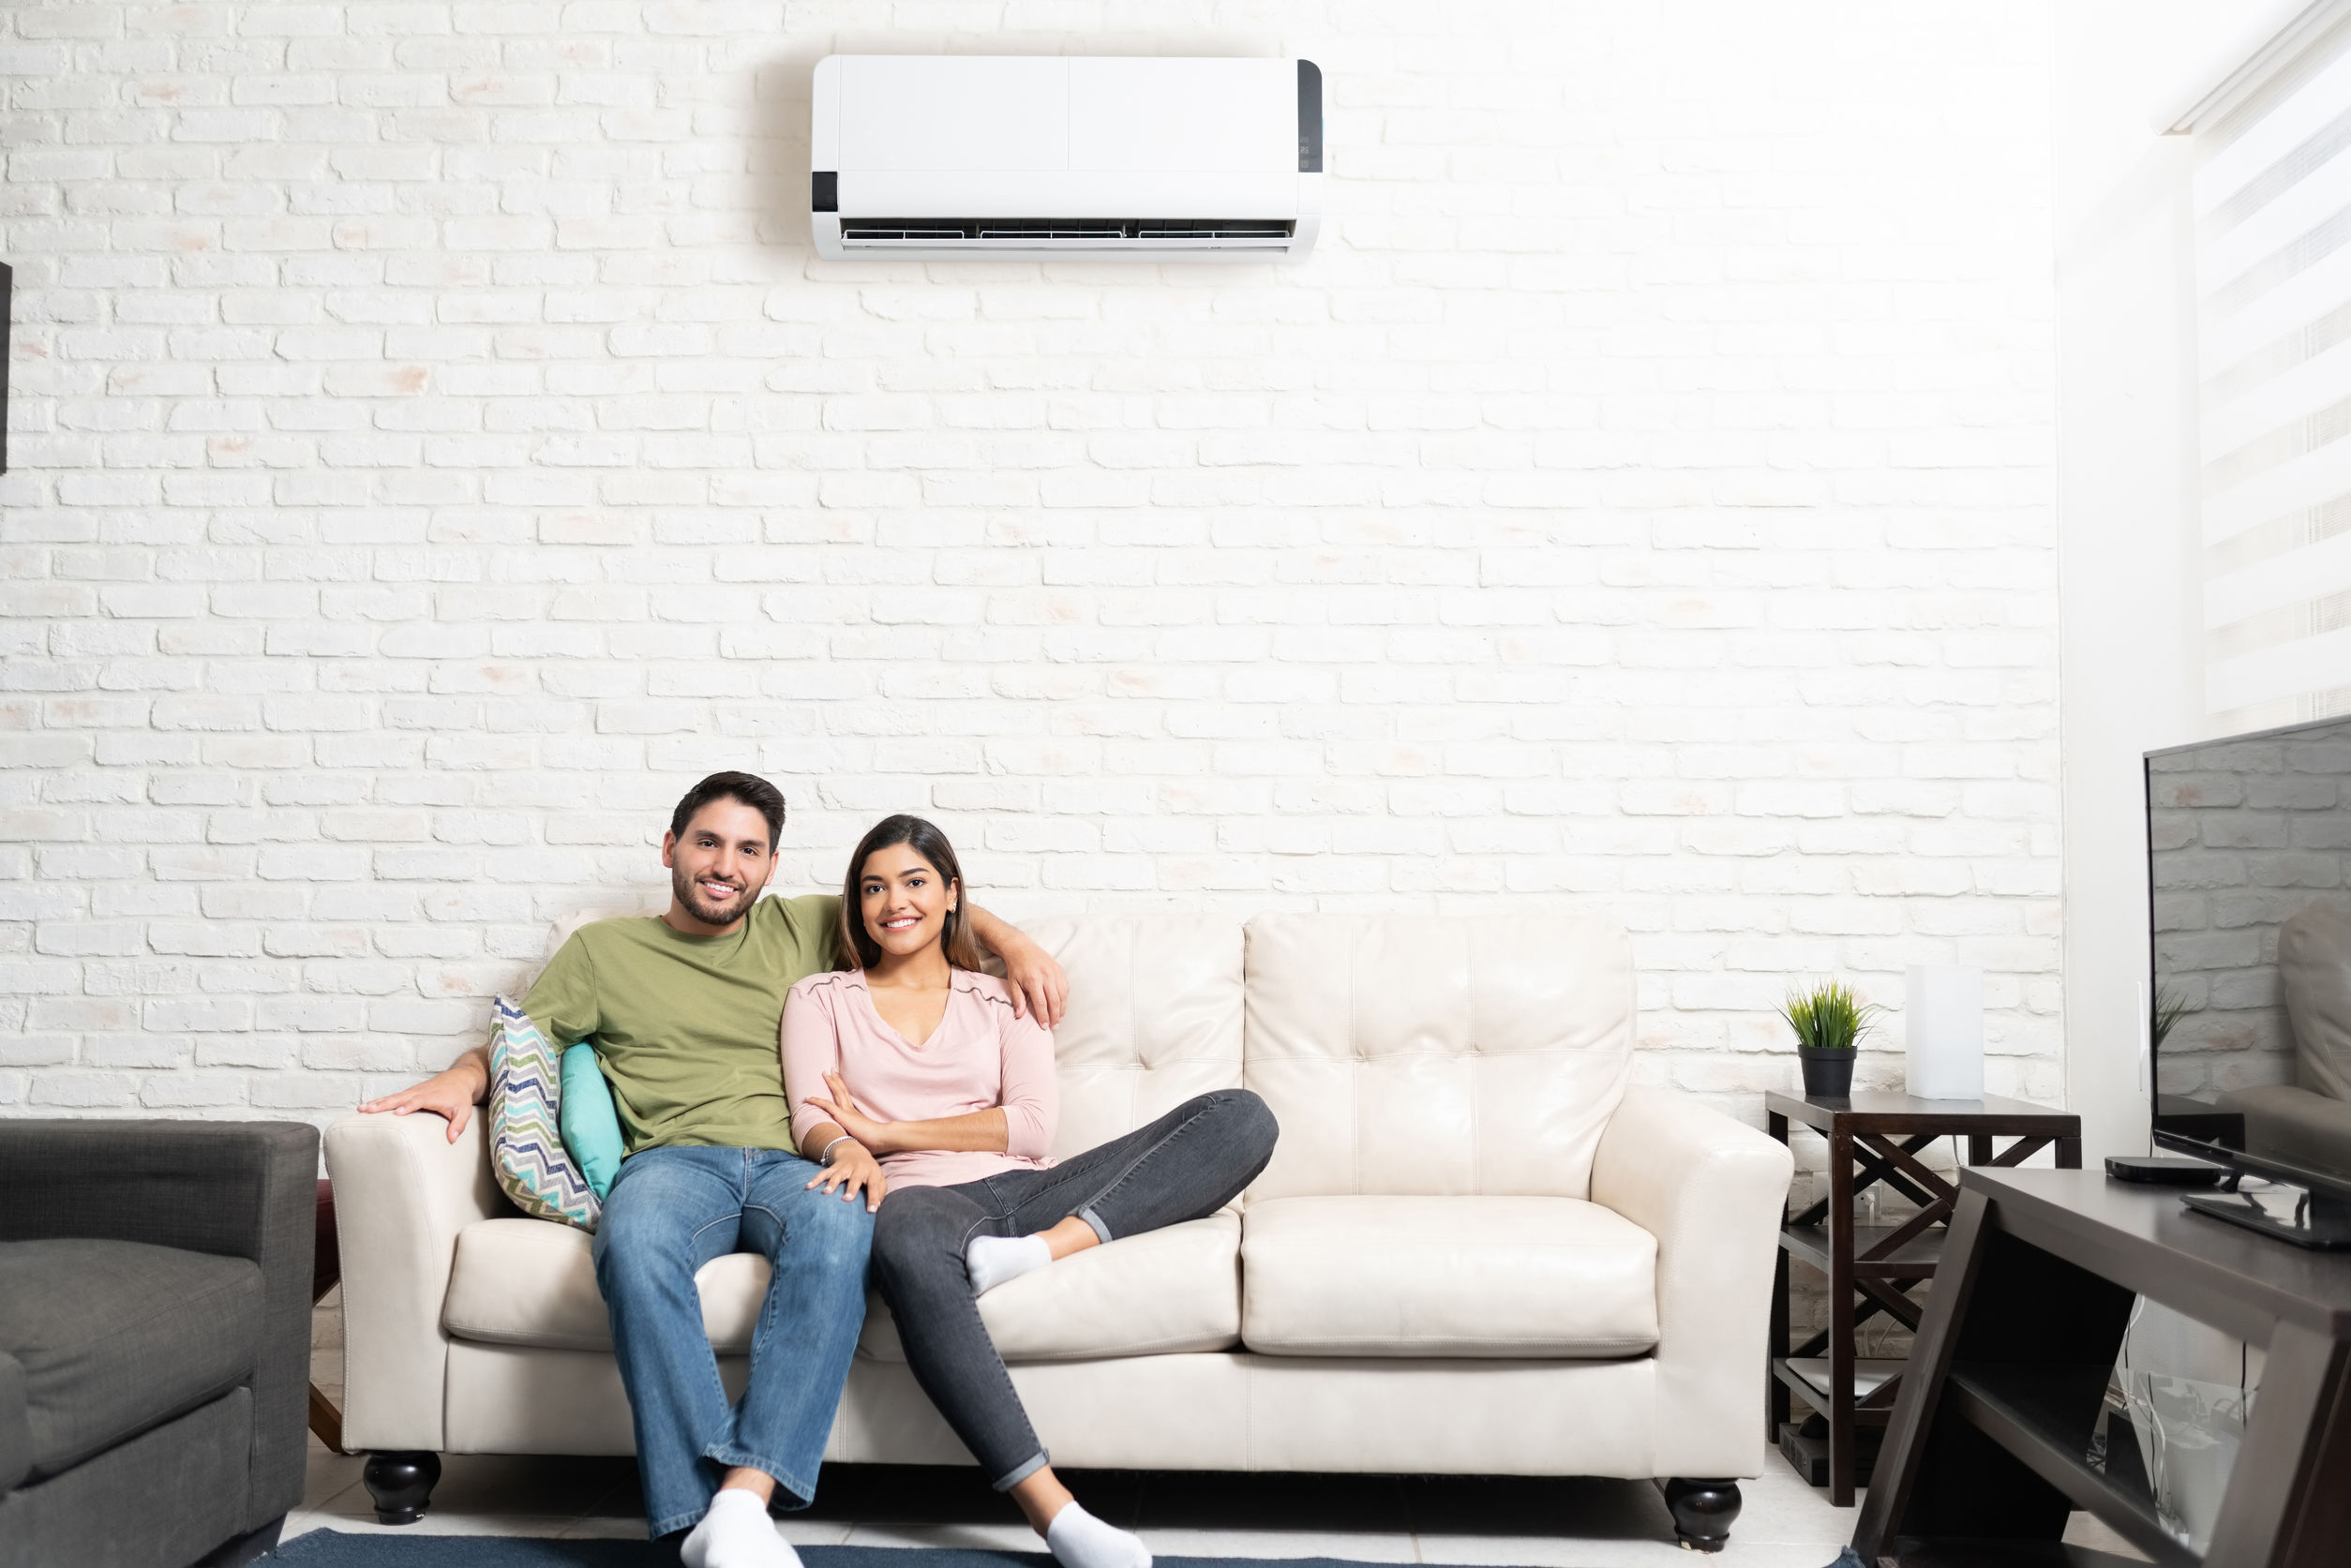 Making a Ductless Mini-Split Work for Your Home Office or Home Gym